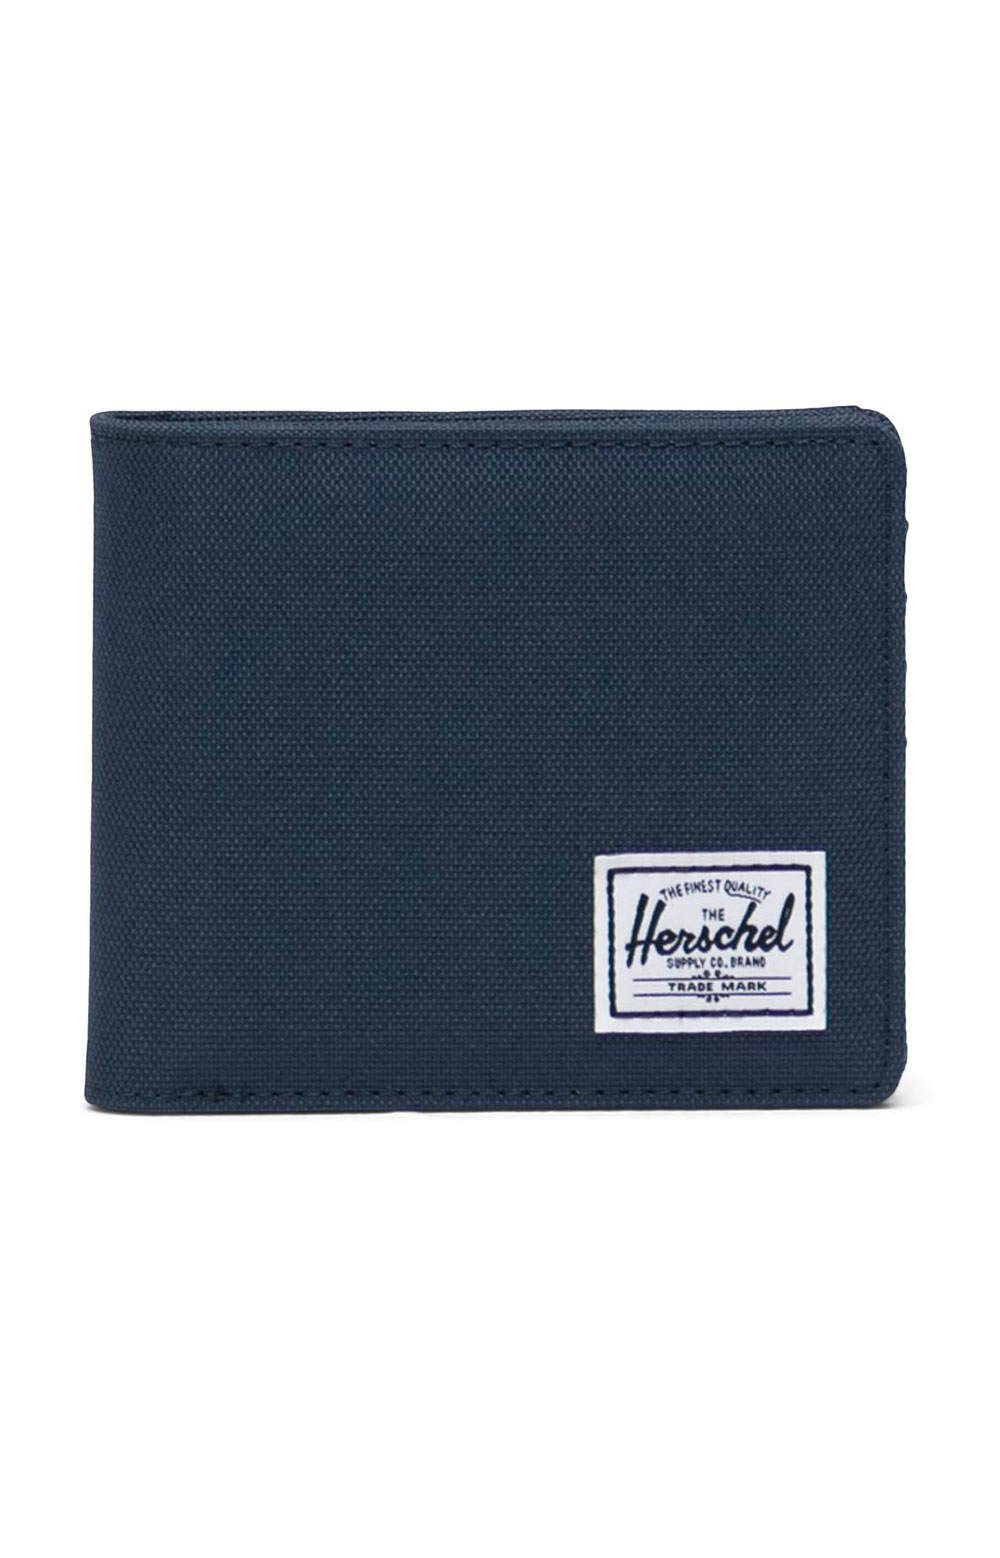 Andy Wallet - Navy/Red